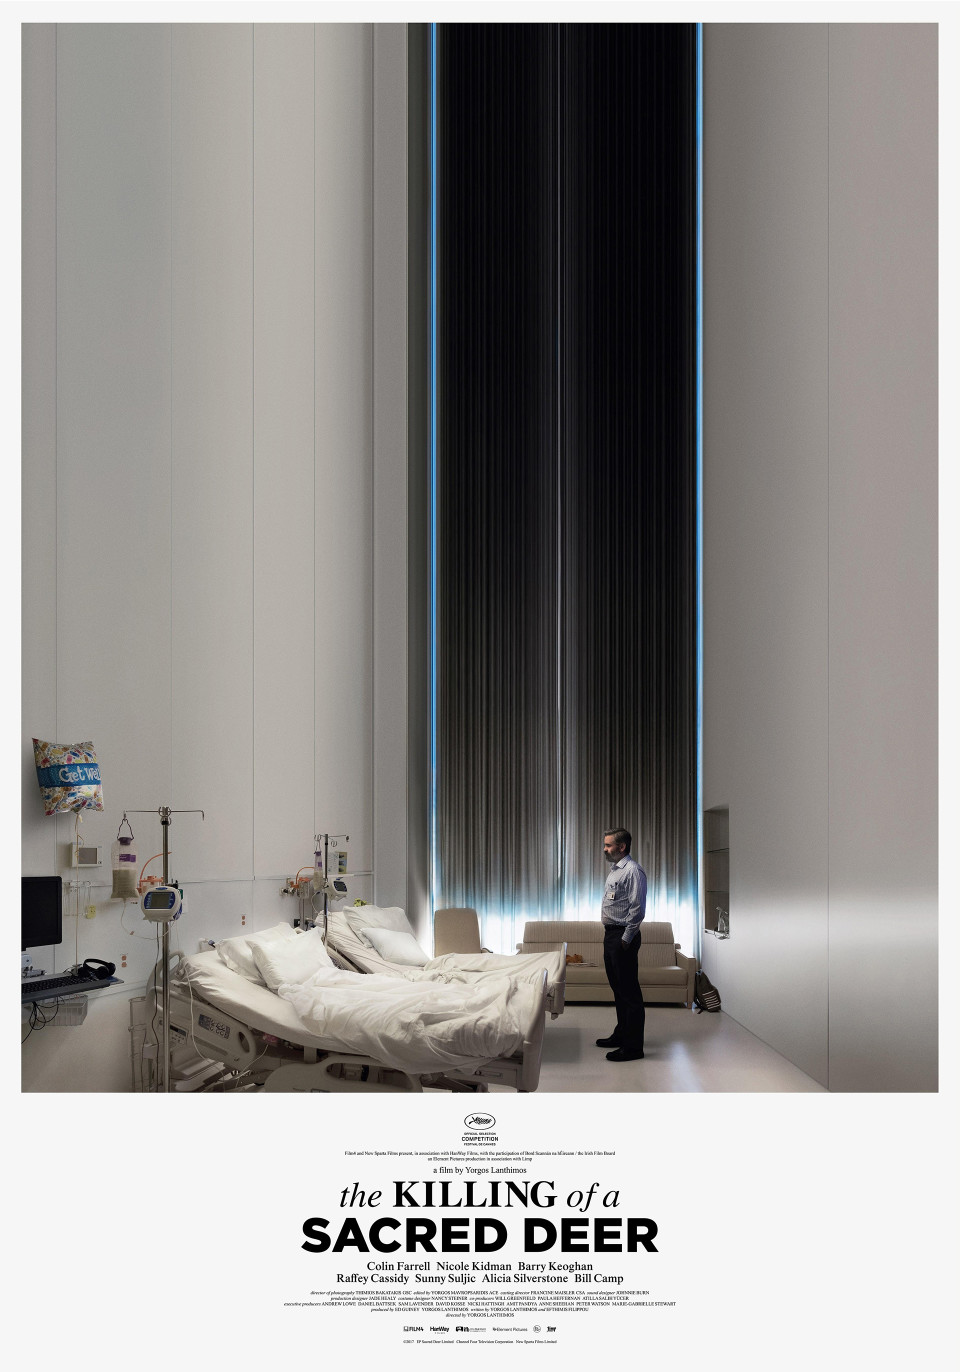 The Killing of a Sacred Deer movie posters - Fonts In Use